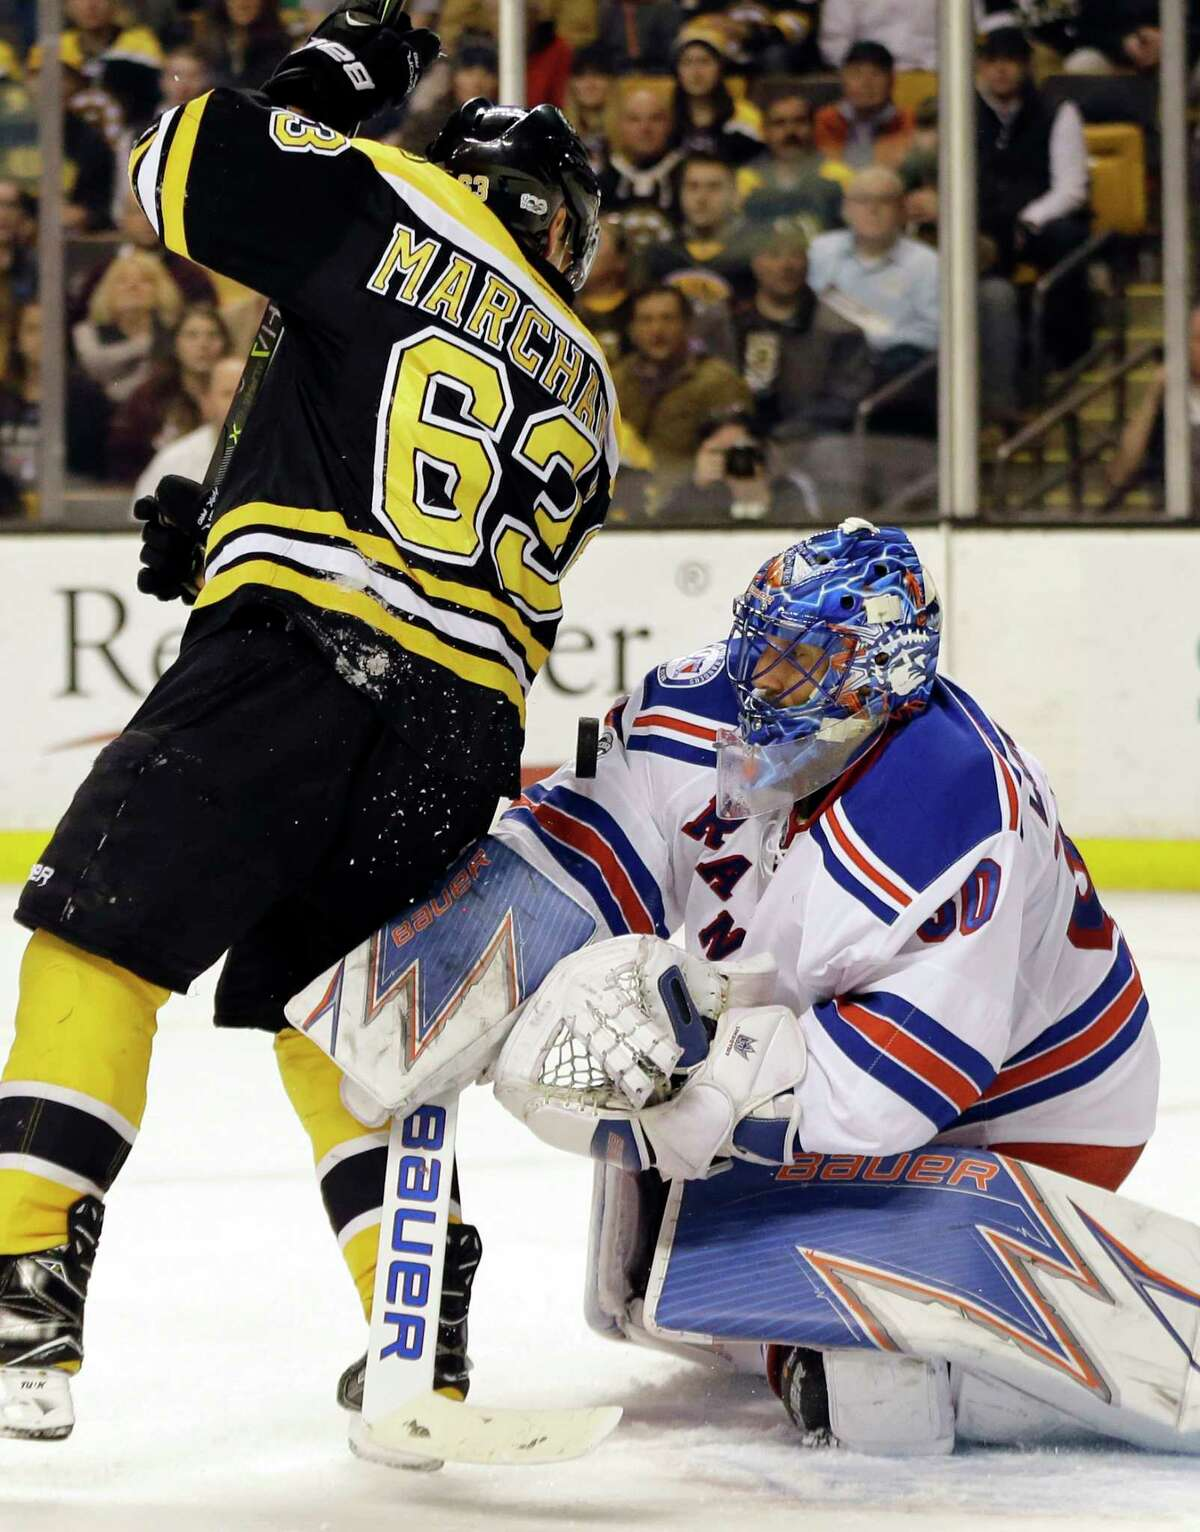 New York Rangers goalie Henrik Lundqvist (30) defends as Boston Bruins left wing Brad Marchand (63) tries to gain position in front of the net during the second period of an NHL hockey game, Thursday, March 2, 2017, in Boston. (AP Photo/Elise Amendola) ORG XMIT: MAEA104